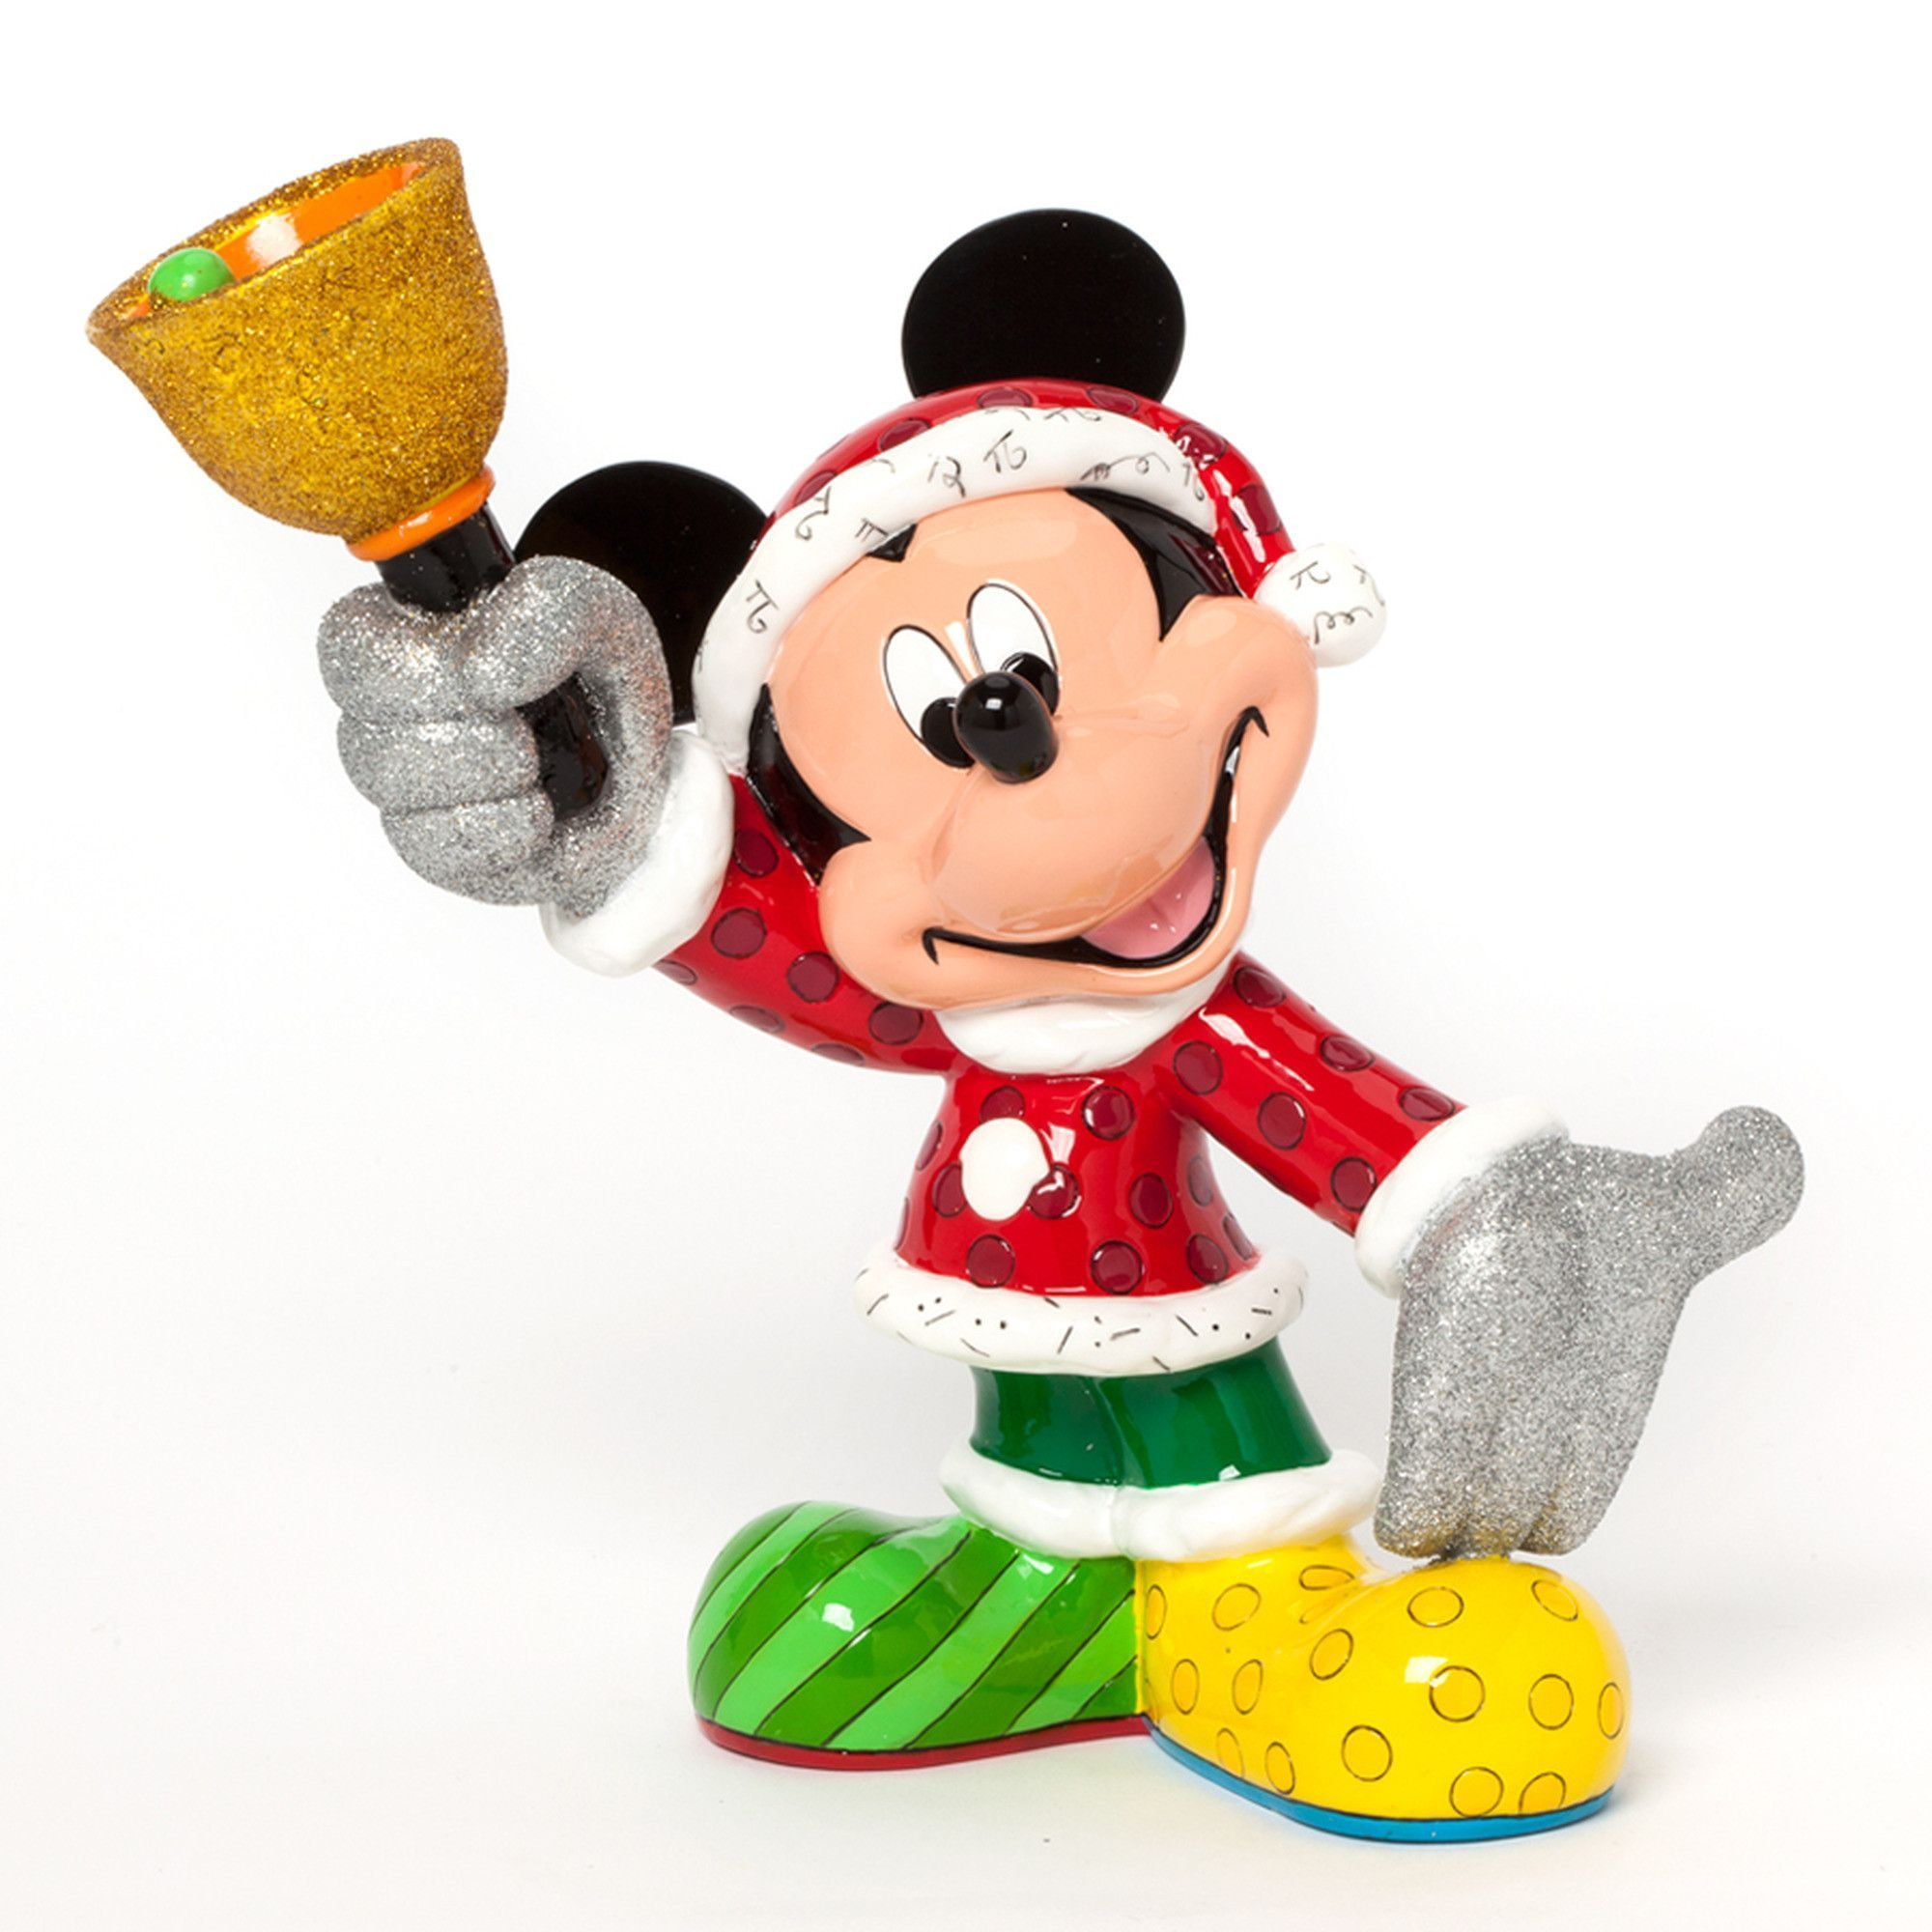 Disney Britto Santa Mickey Figurine - Minnie Mouse Halloween Decorations